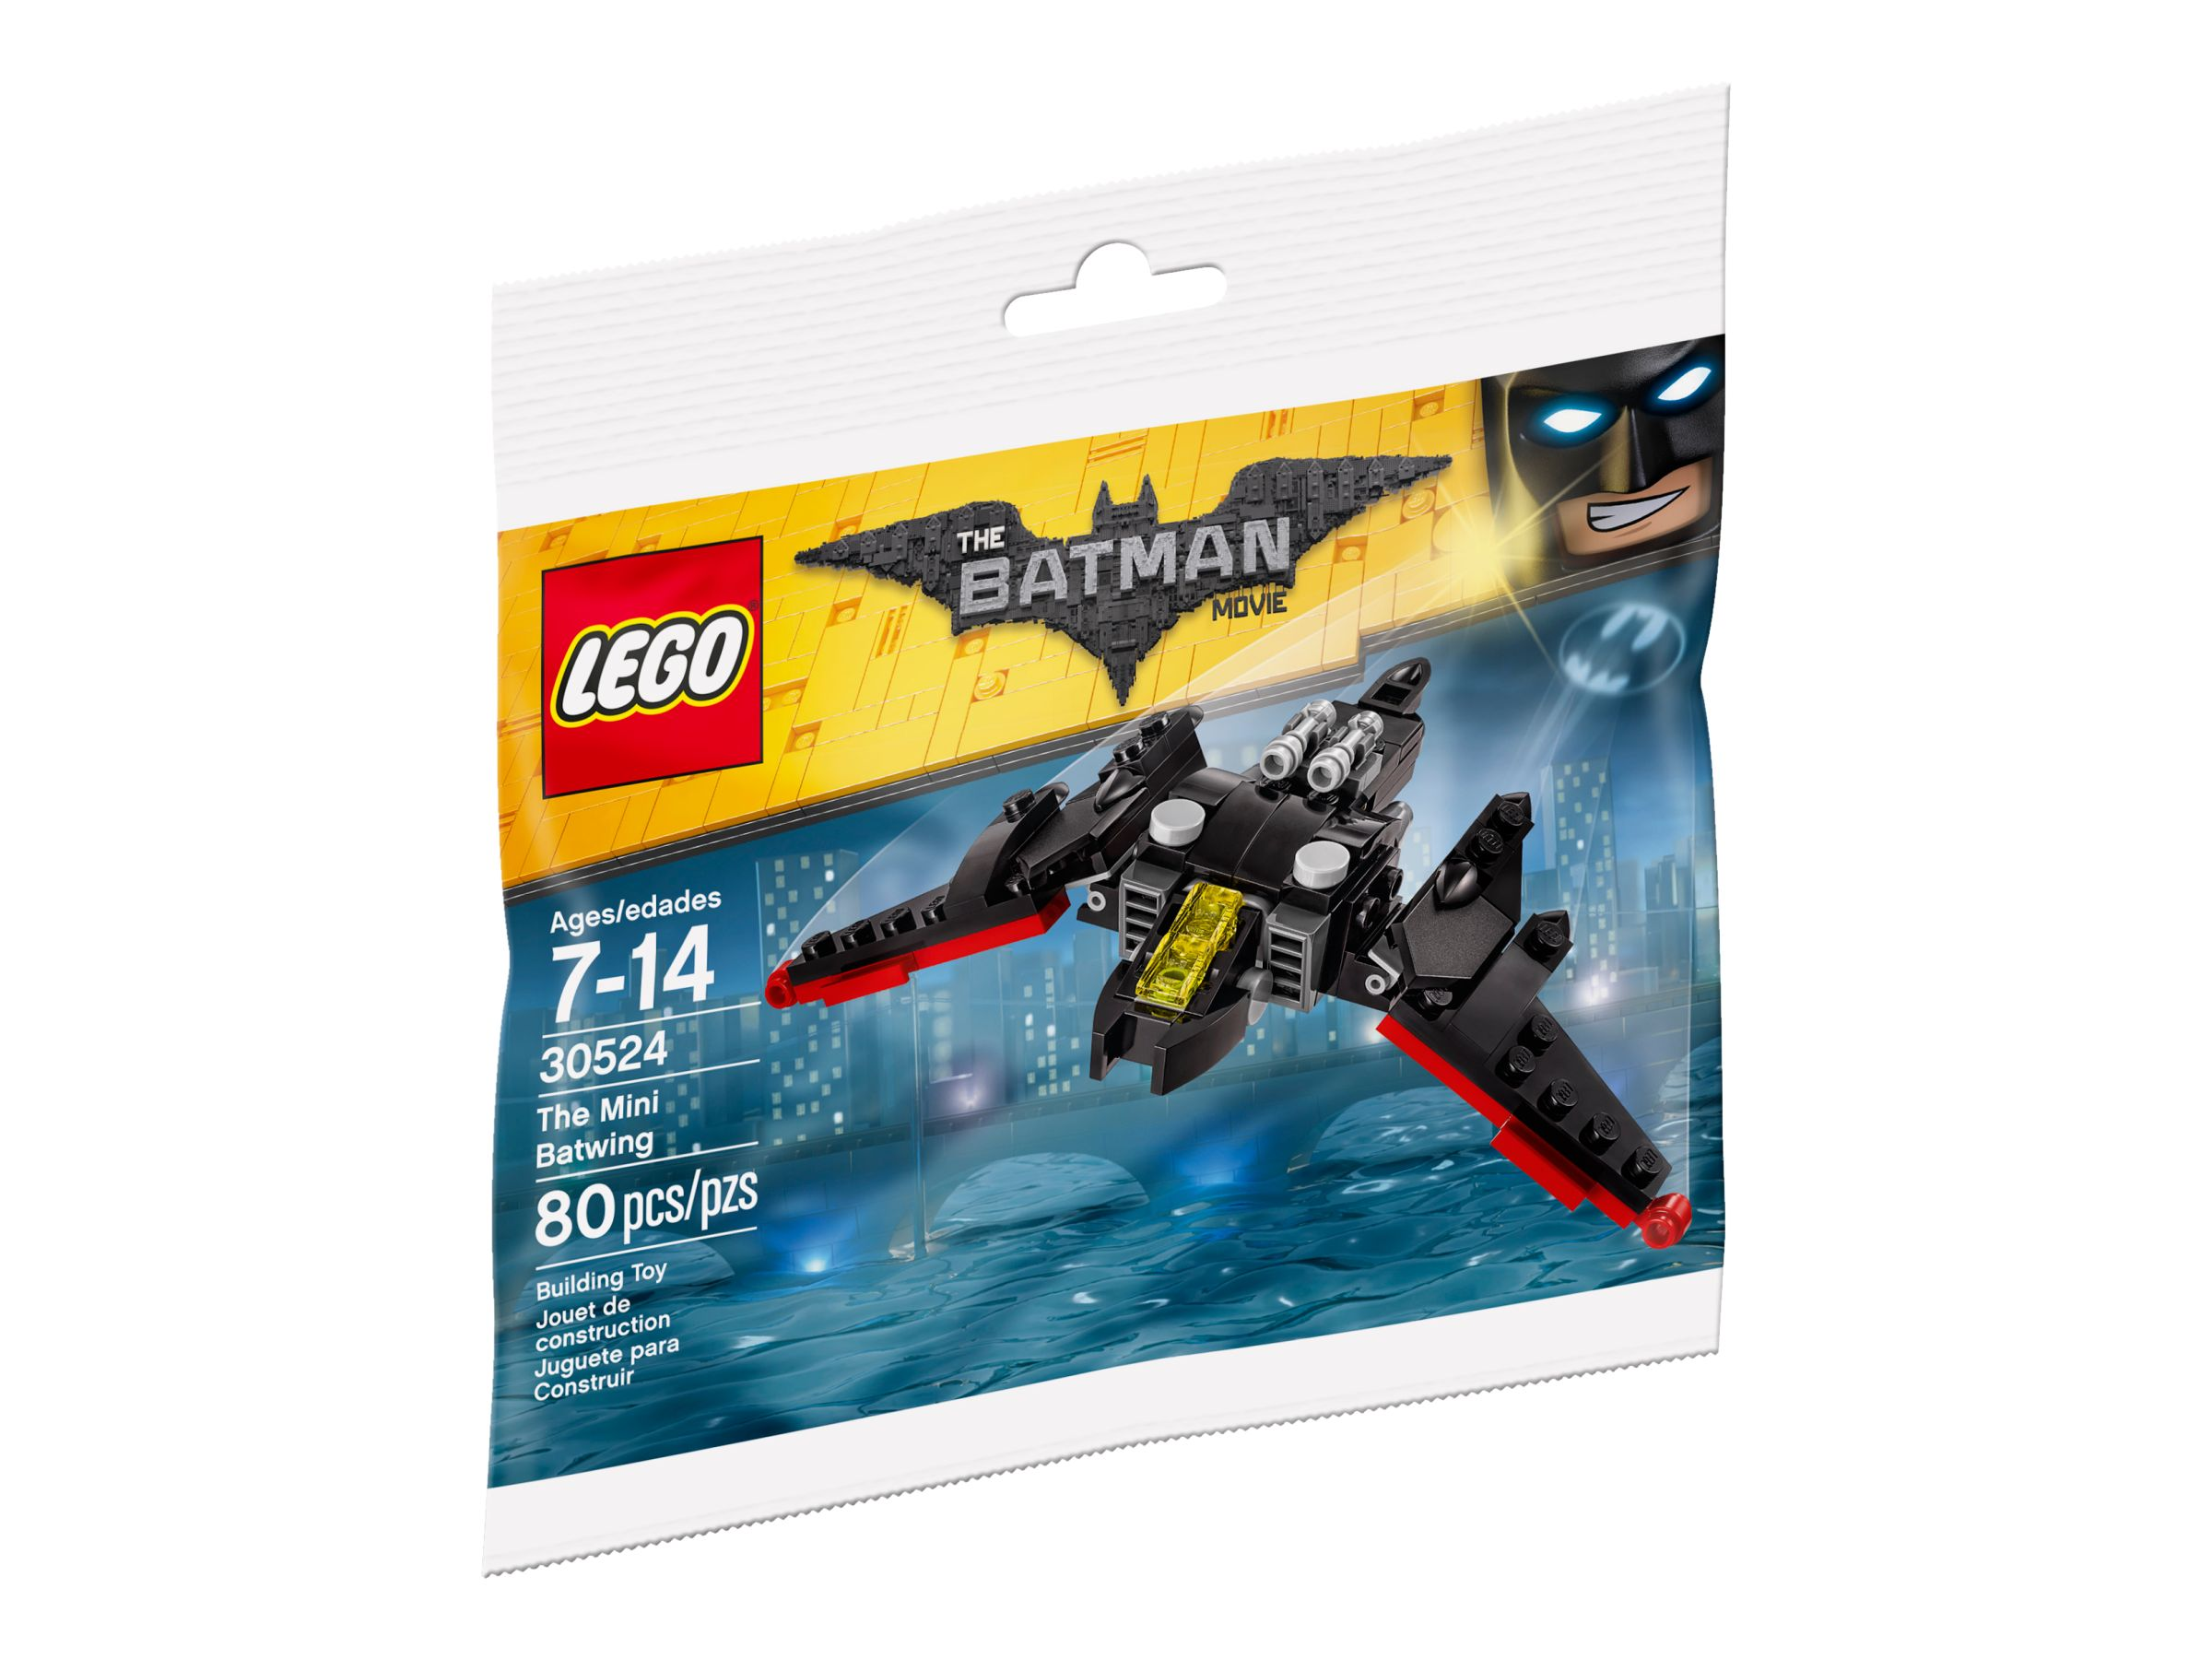 LEGO The LEGO Batman Movie 30524 Polybag LEGO THE BATMAN MOVIE - Das Mini-Batwing LEGO_30524_alt1.jpg